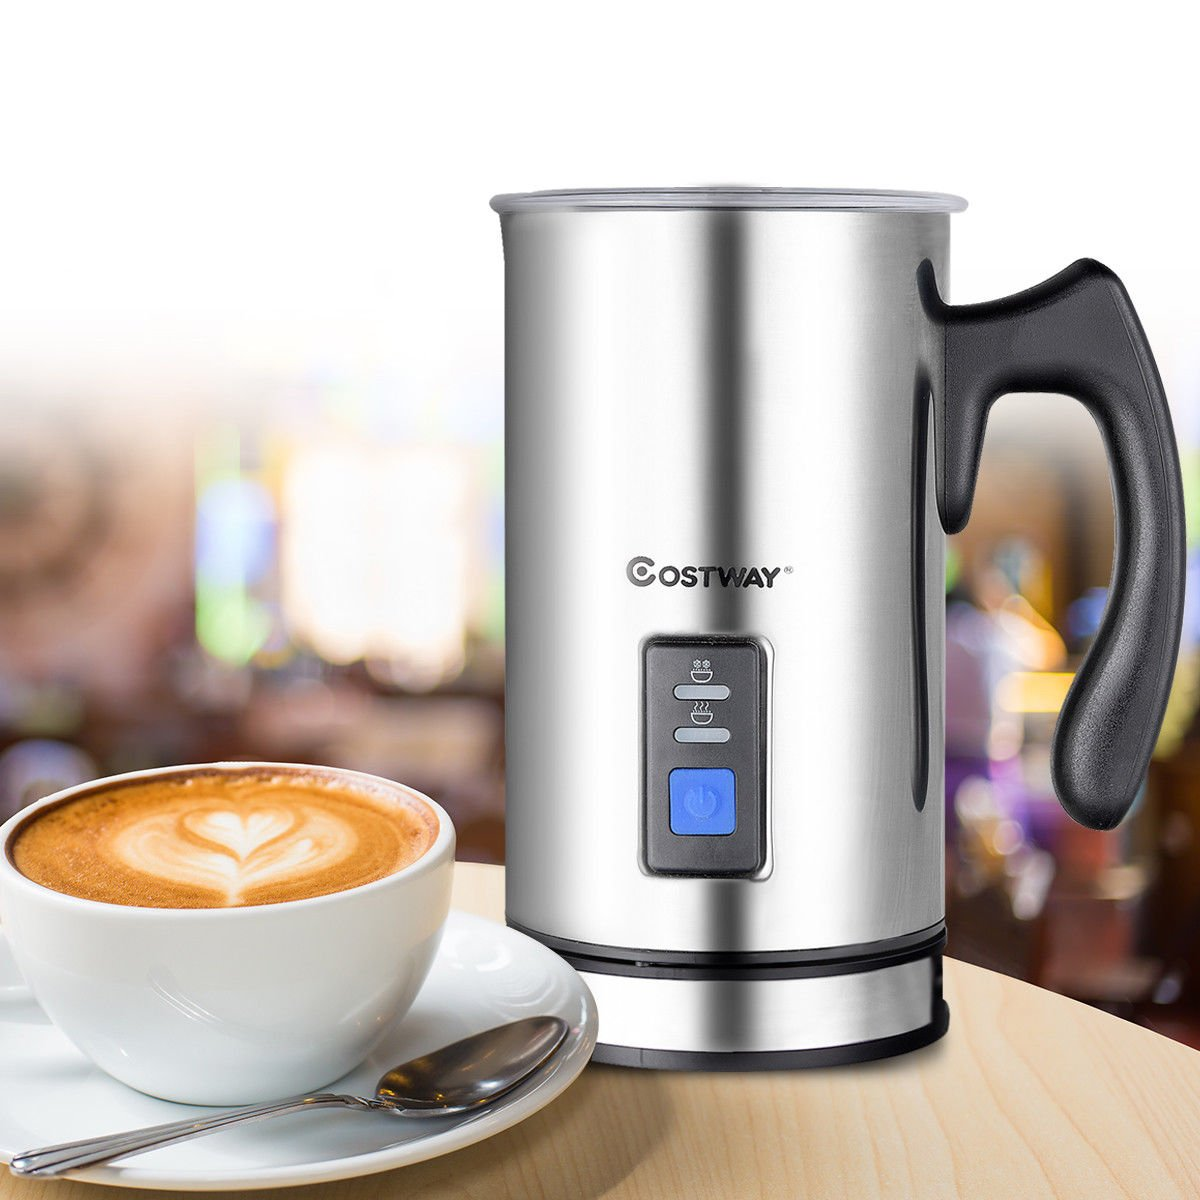 COSTWAY Milk Frother, Electric Automatic Stainless Steel,Non-Stick Interior, Milk Steamer Foamer for Coffee, Latte, Cappuccino with Handheld (Stainless-Update) by COSTWAY (Image #3)